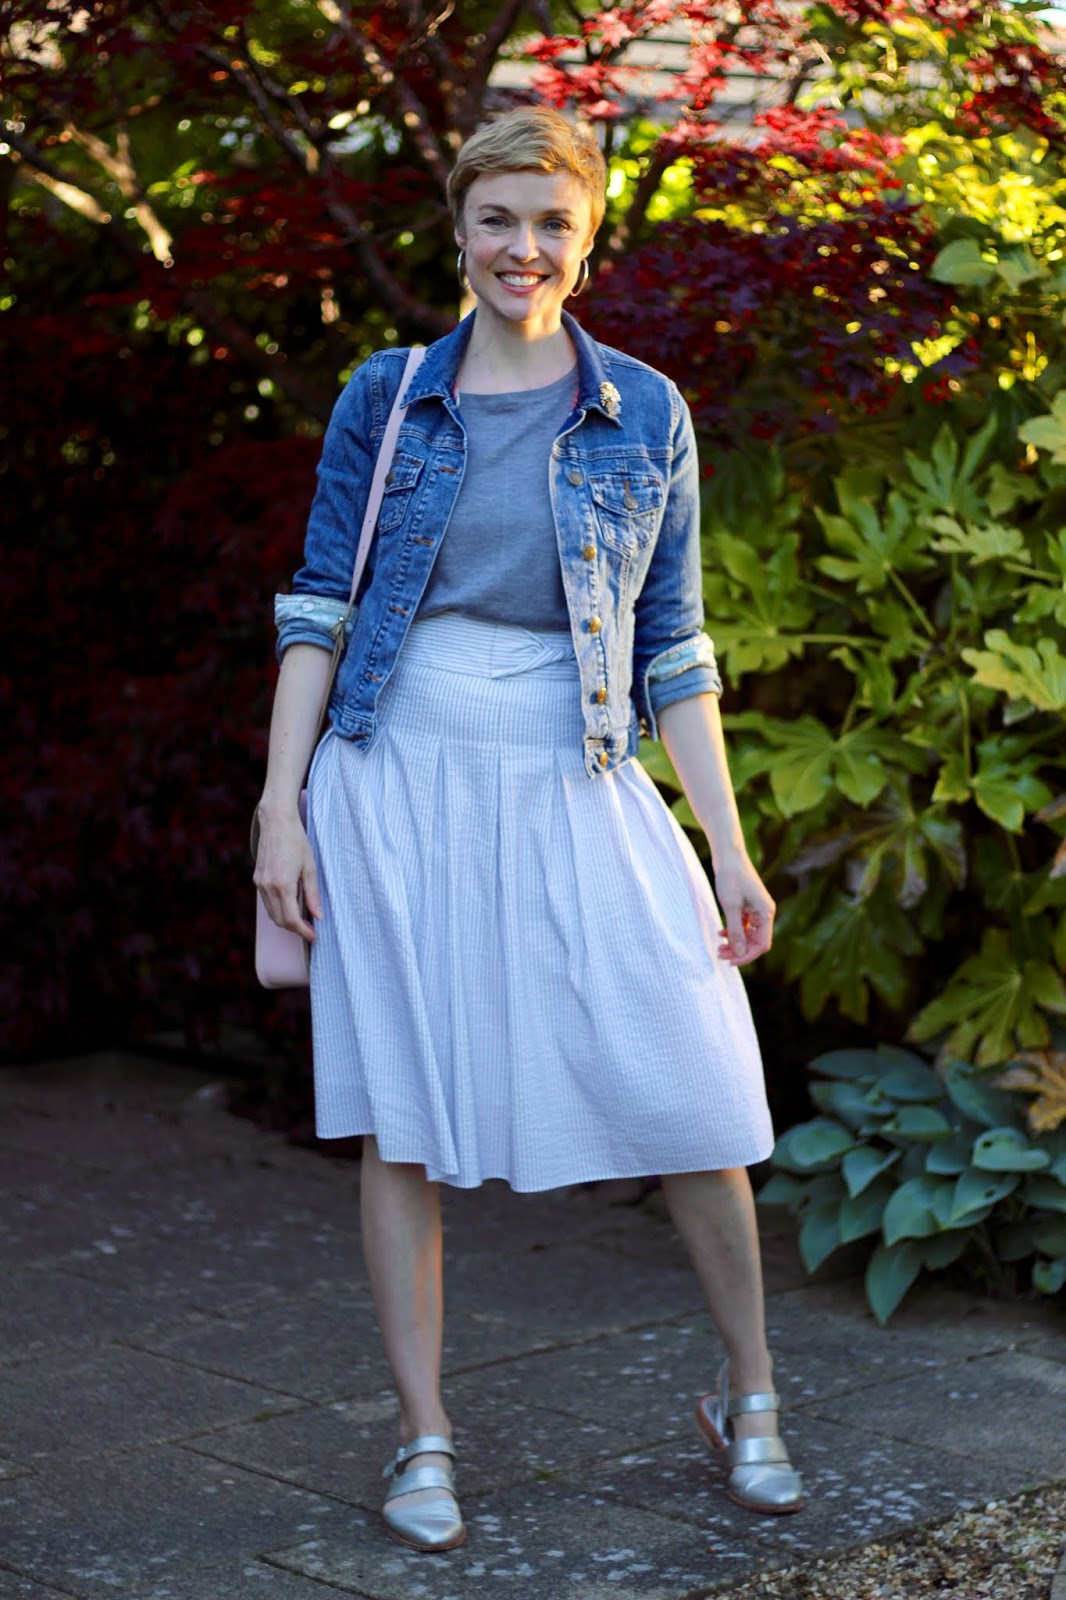 Denim jacket, ticking stripe full skirt and silver accessories | Fake Fabulous